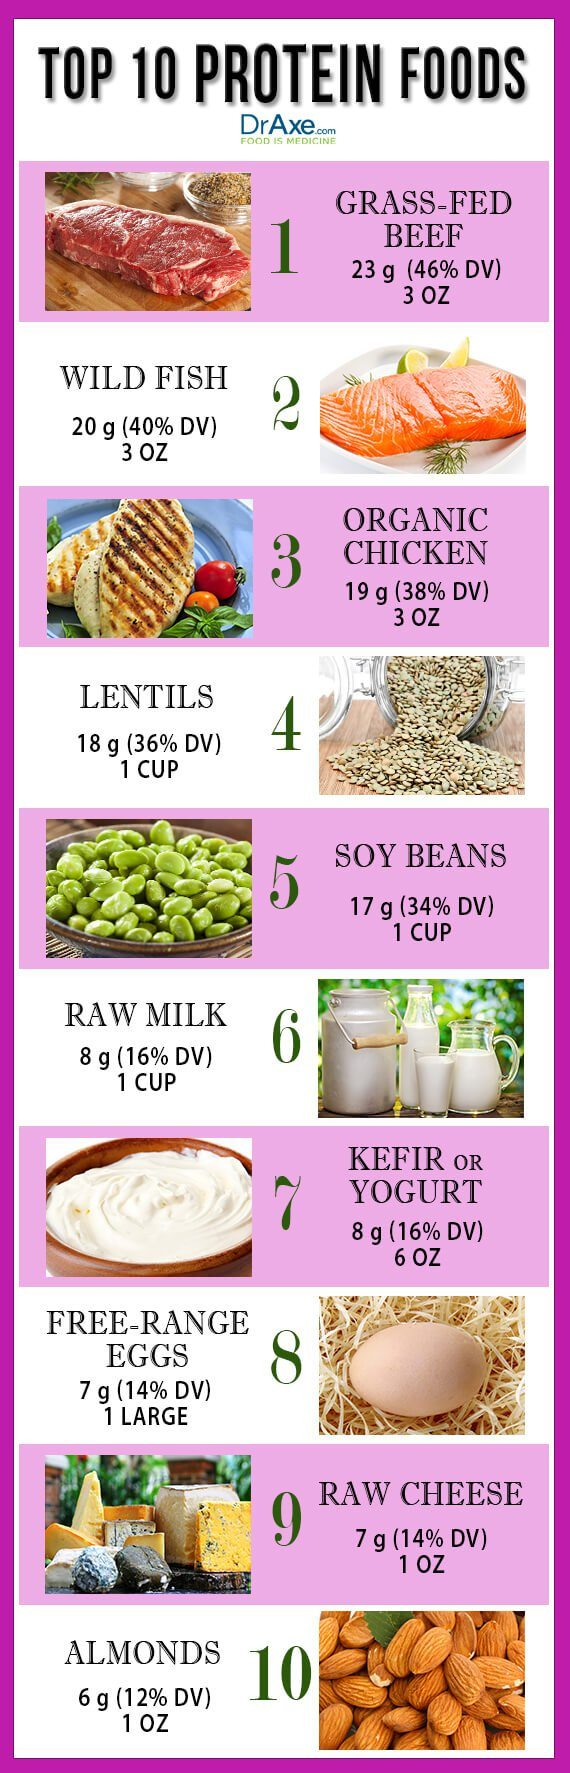 How To Gain Weight Fast For Women